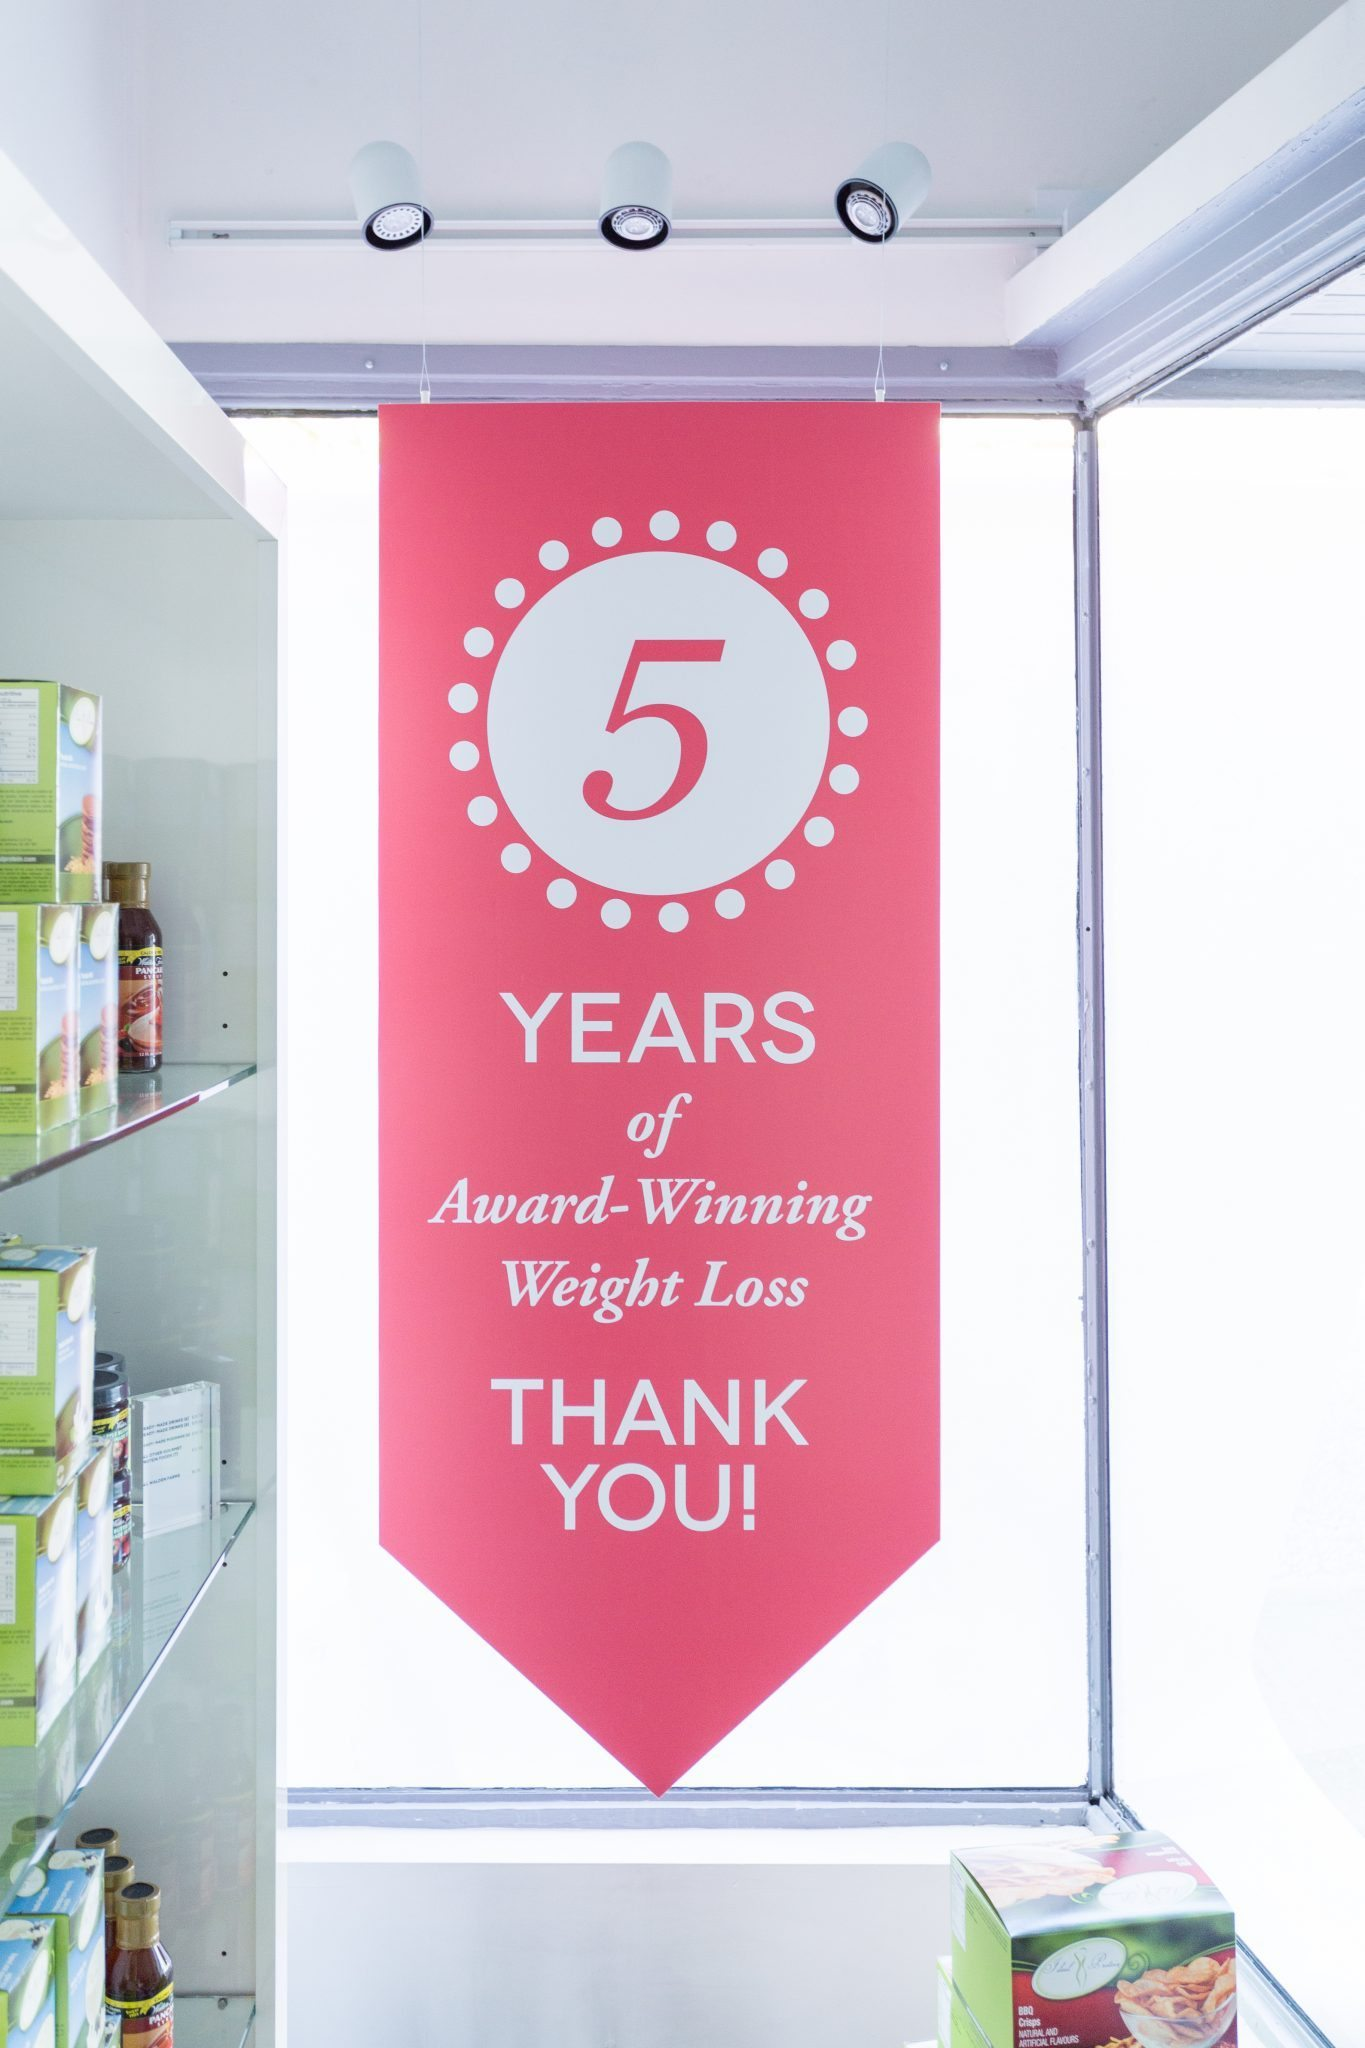 We celebrated 5 years of award winning weight loss in 2016.